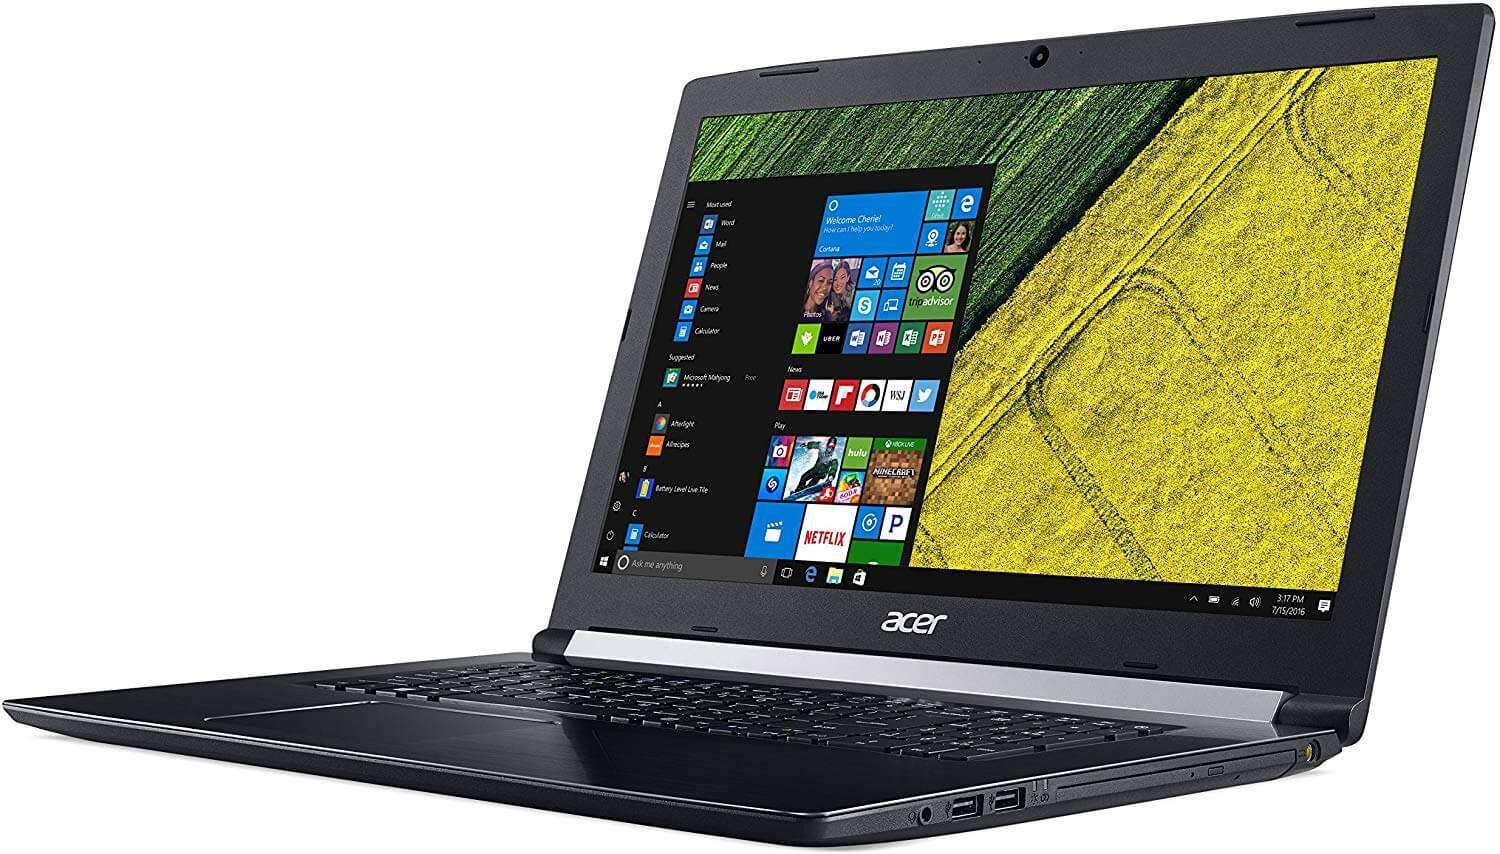 Acer Aspire 5 With 15.6-Inch Display, Core i5 Processor/6GB RAM/1TB HDD/2GB NVIDIA GeForce 940MX Graphics Card/English Keyboard Steel Grey